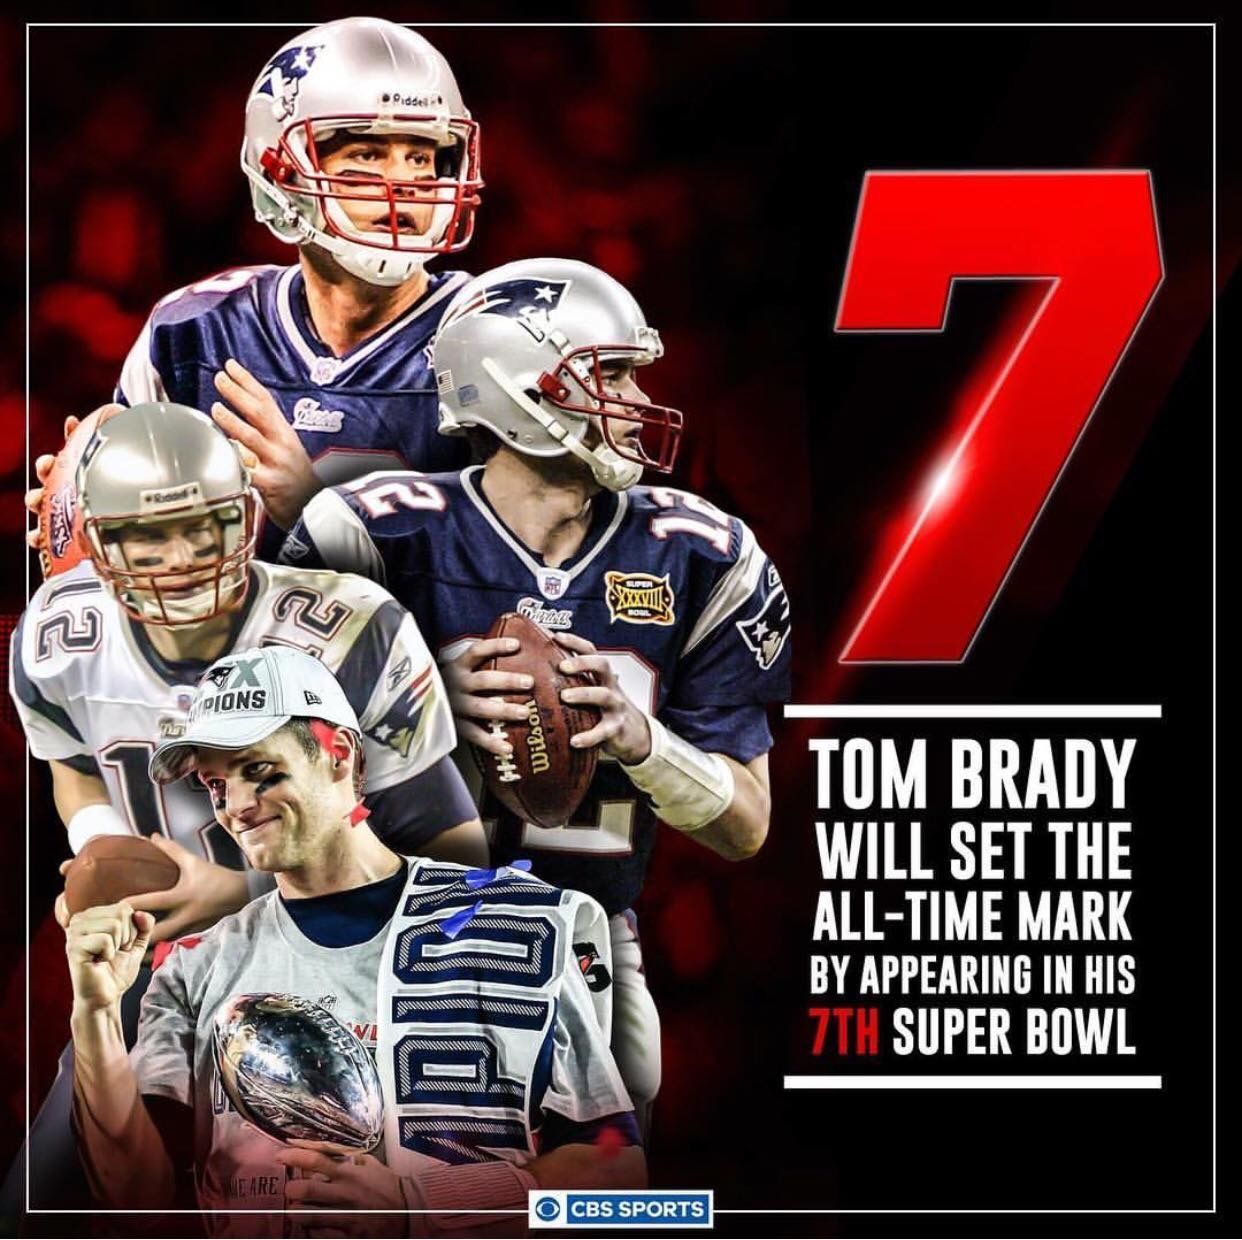 7th Super Bowl Sets Record For Tom Brady Cbs Sports Tom Brady Patriots Football